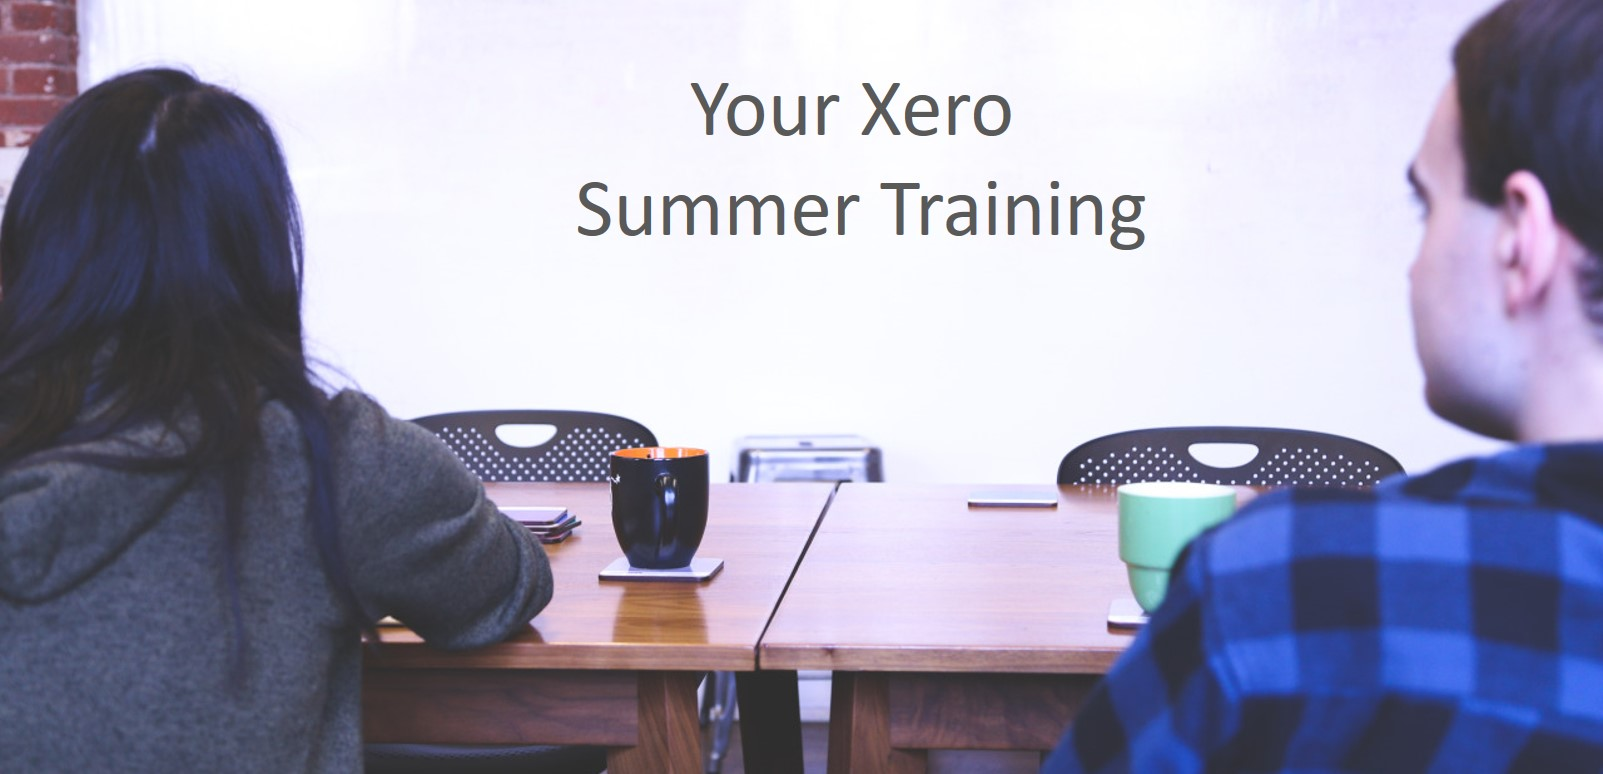 Xero Summer Training